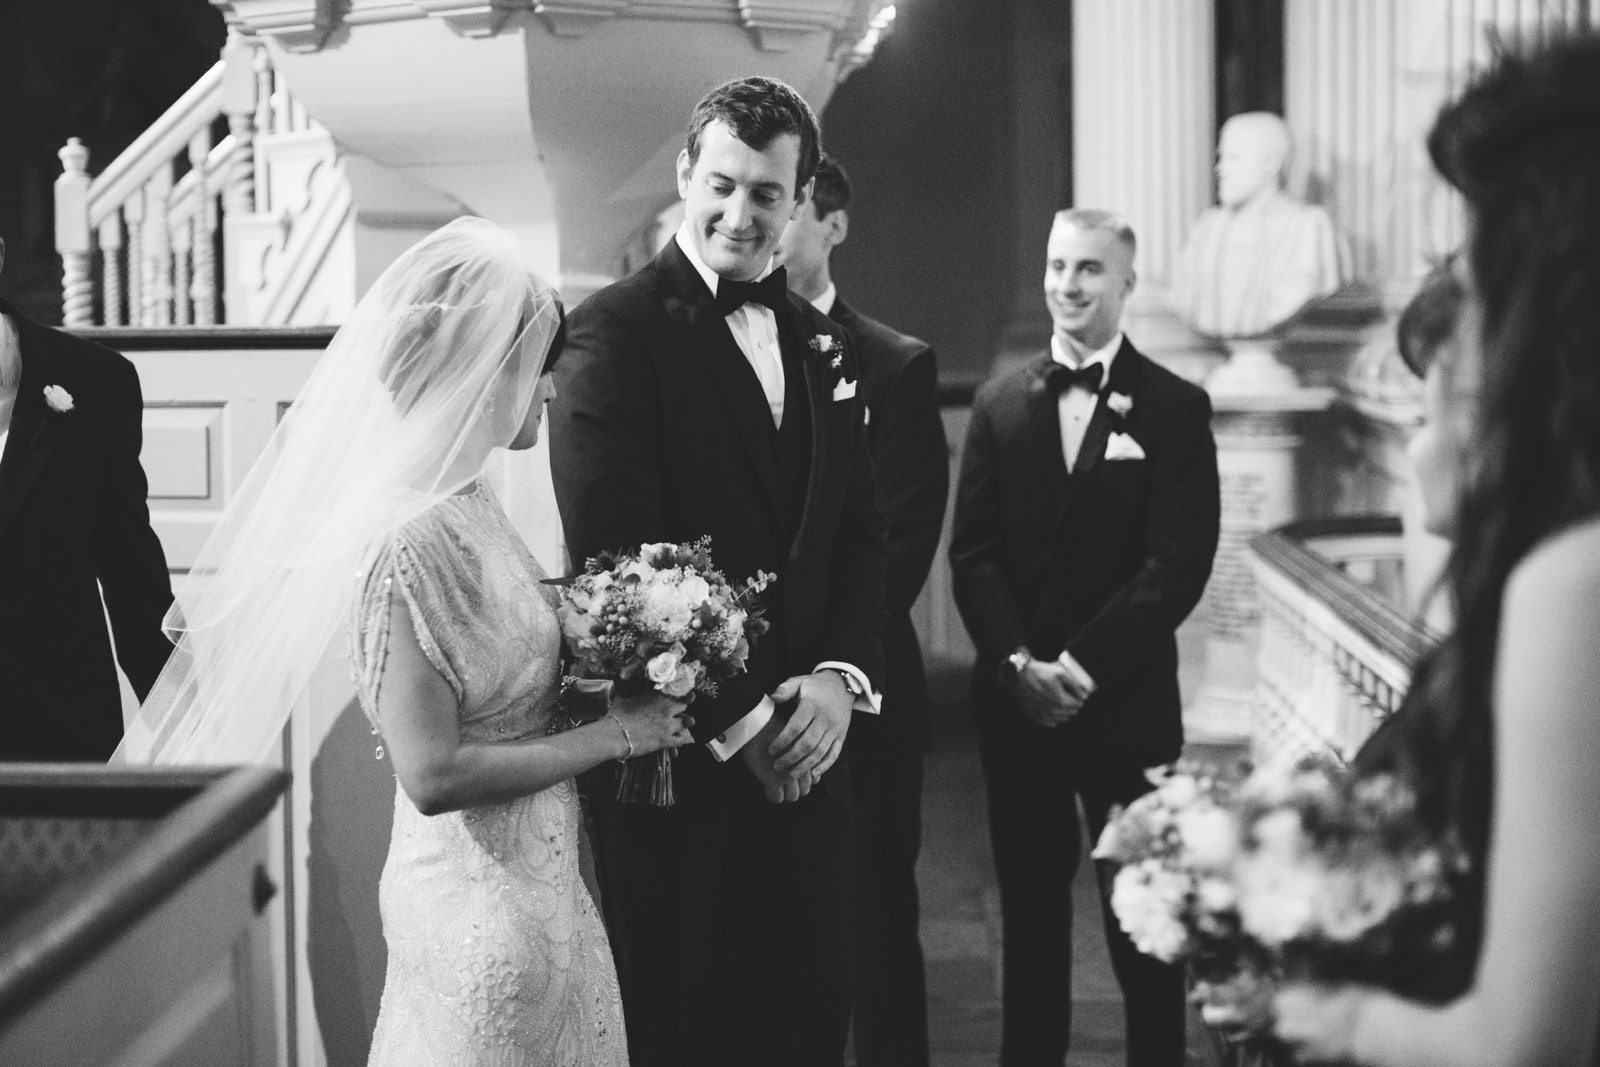 groom smiles at bride during wedding ceremony at vintage 20s era church in Boston